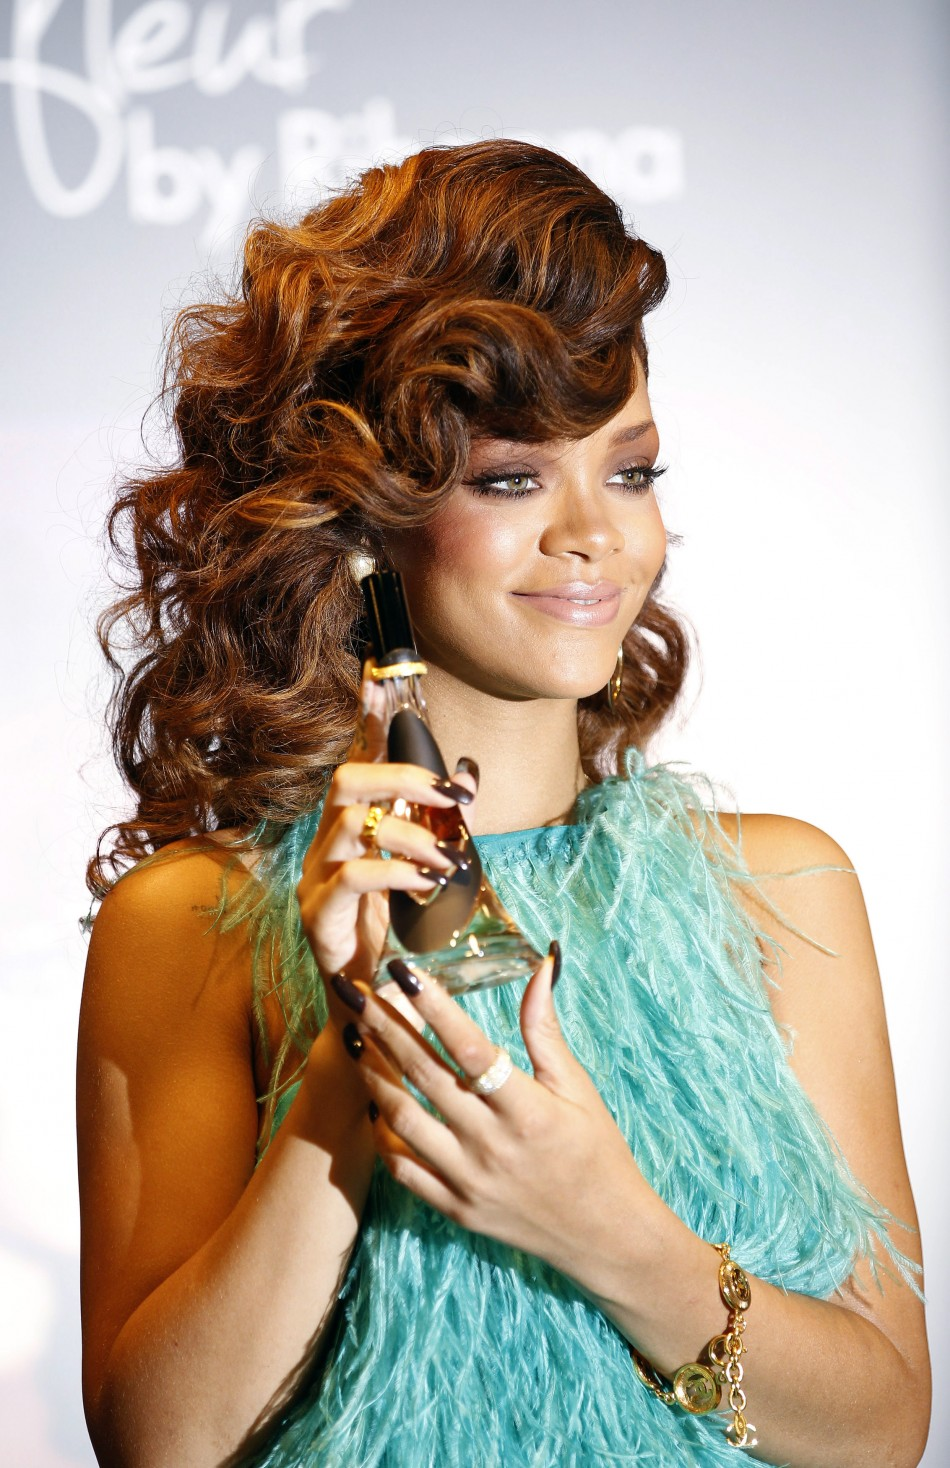 """Singer Rihanna poses with a bottle of her fragrance """"Reb'l Fleur"""" at its launch at a House of Fraser department store in London"""